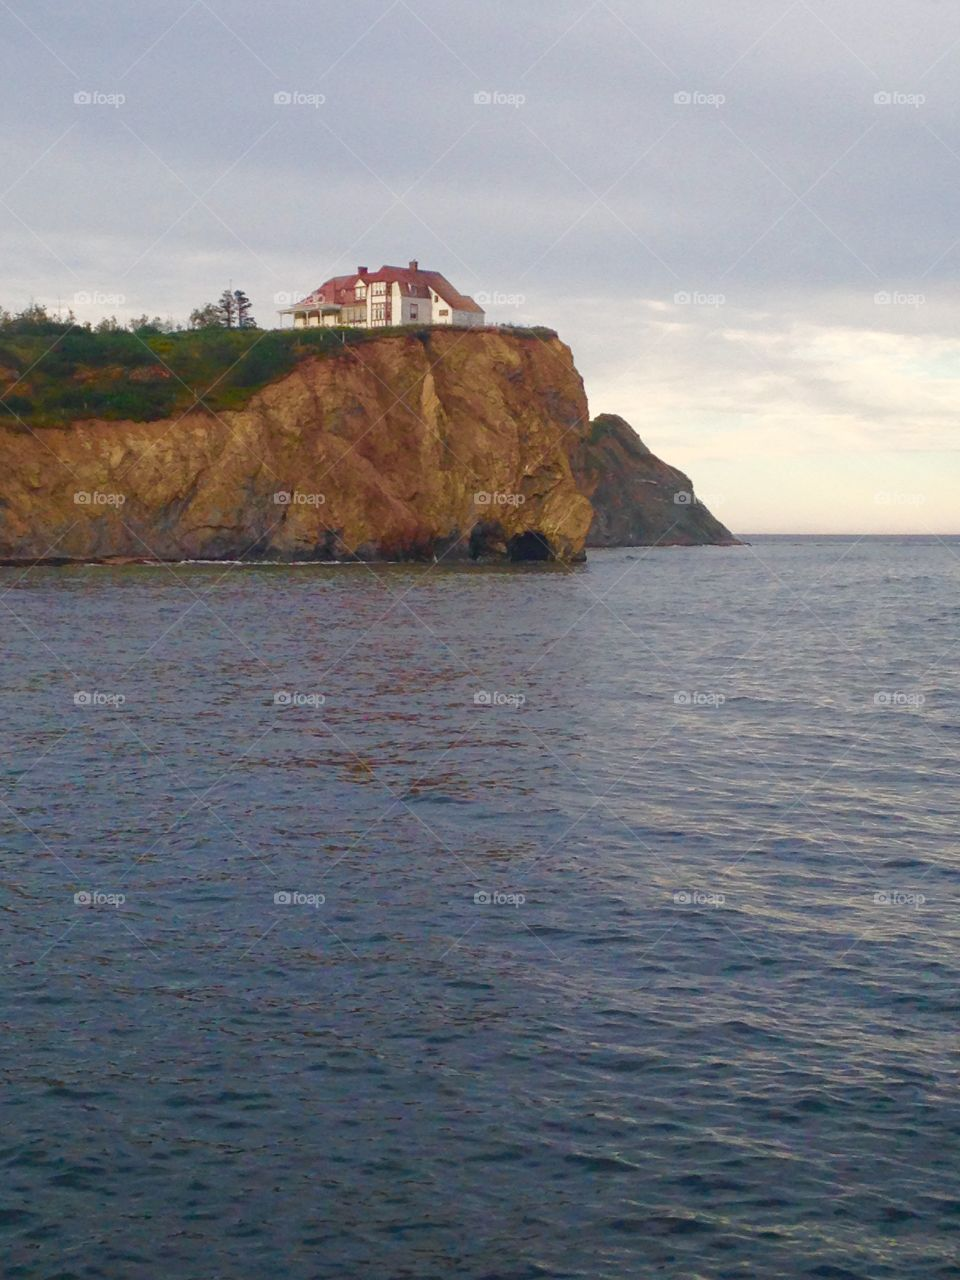 Historic red home on the shore in Perce.